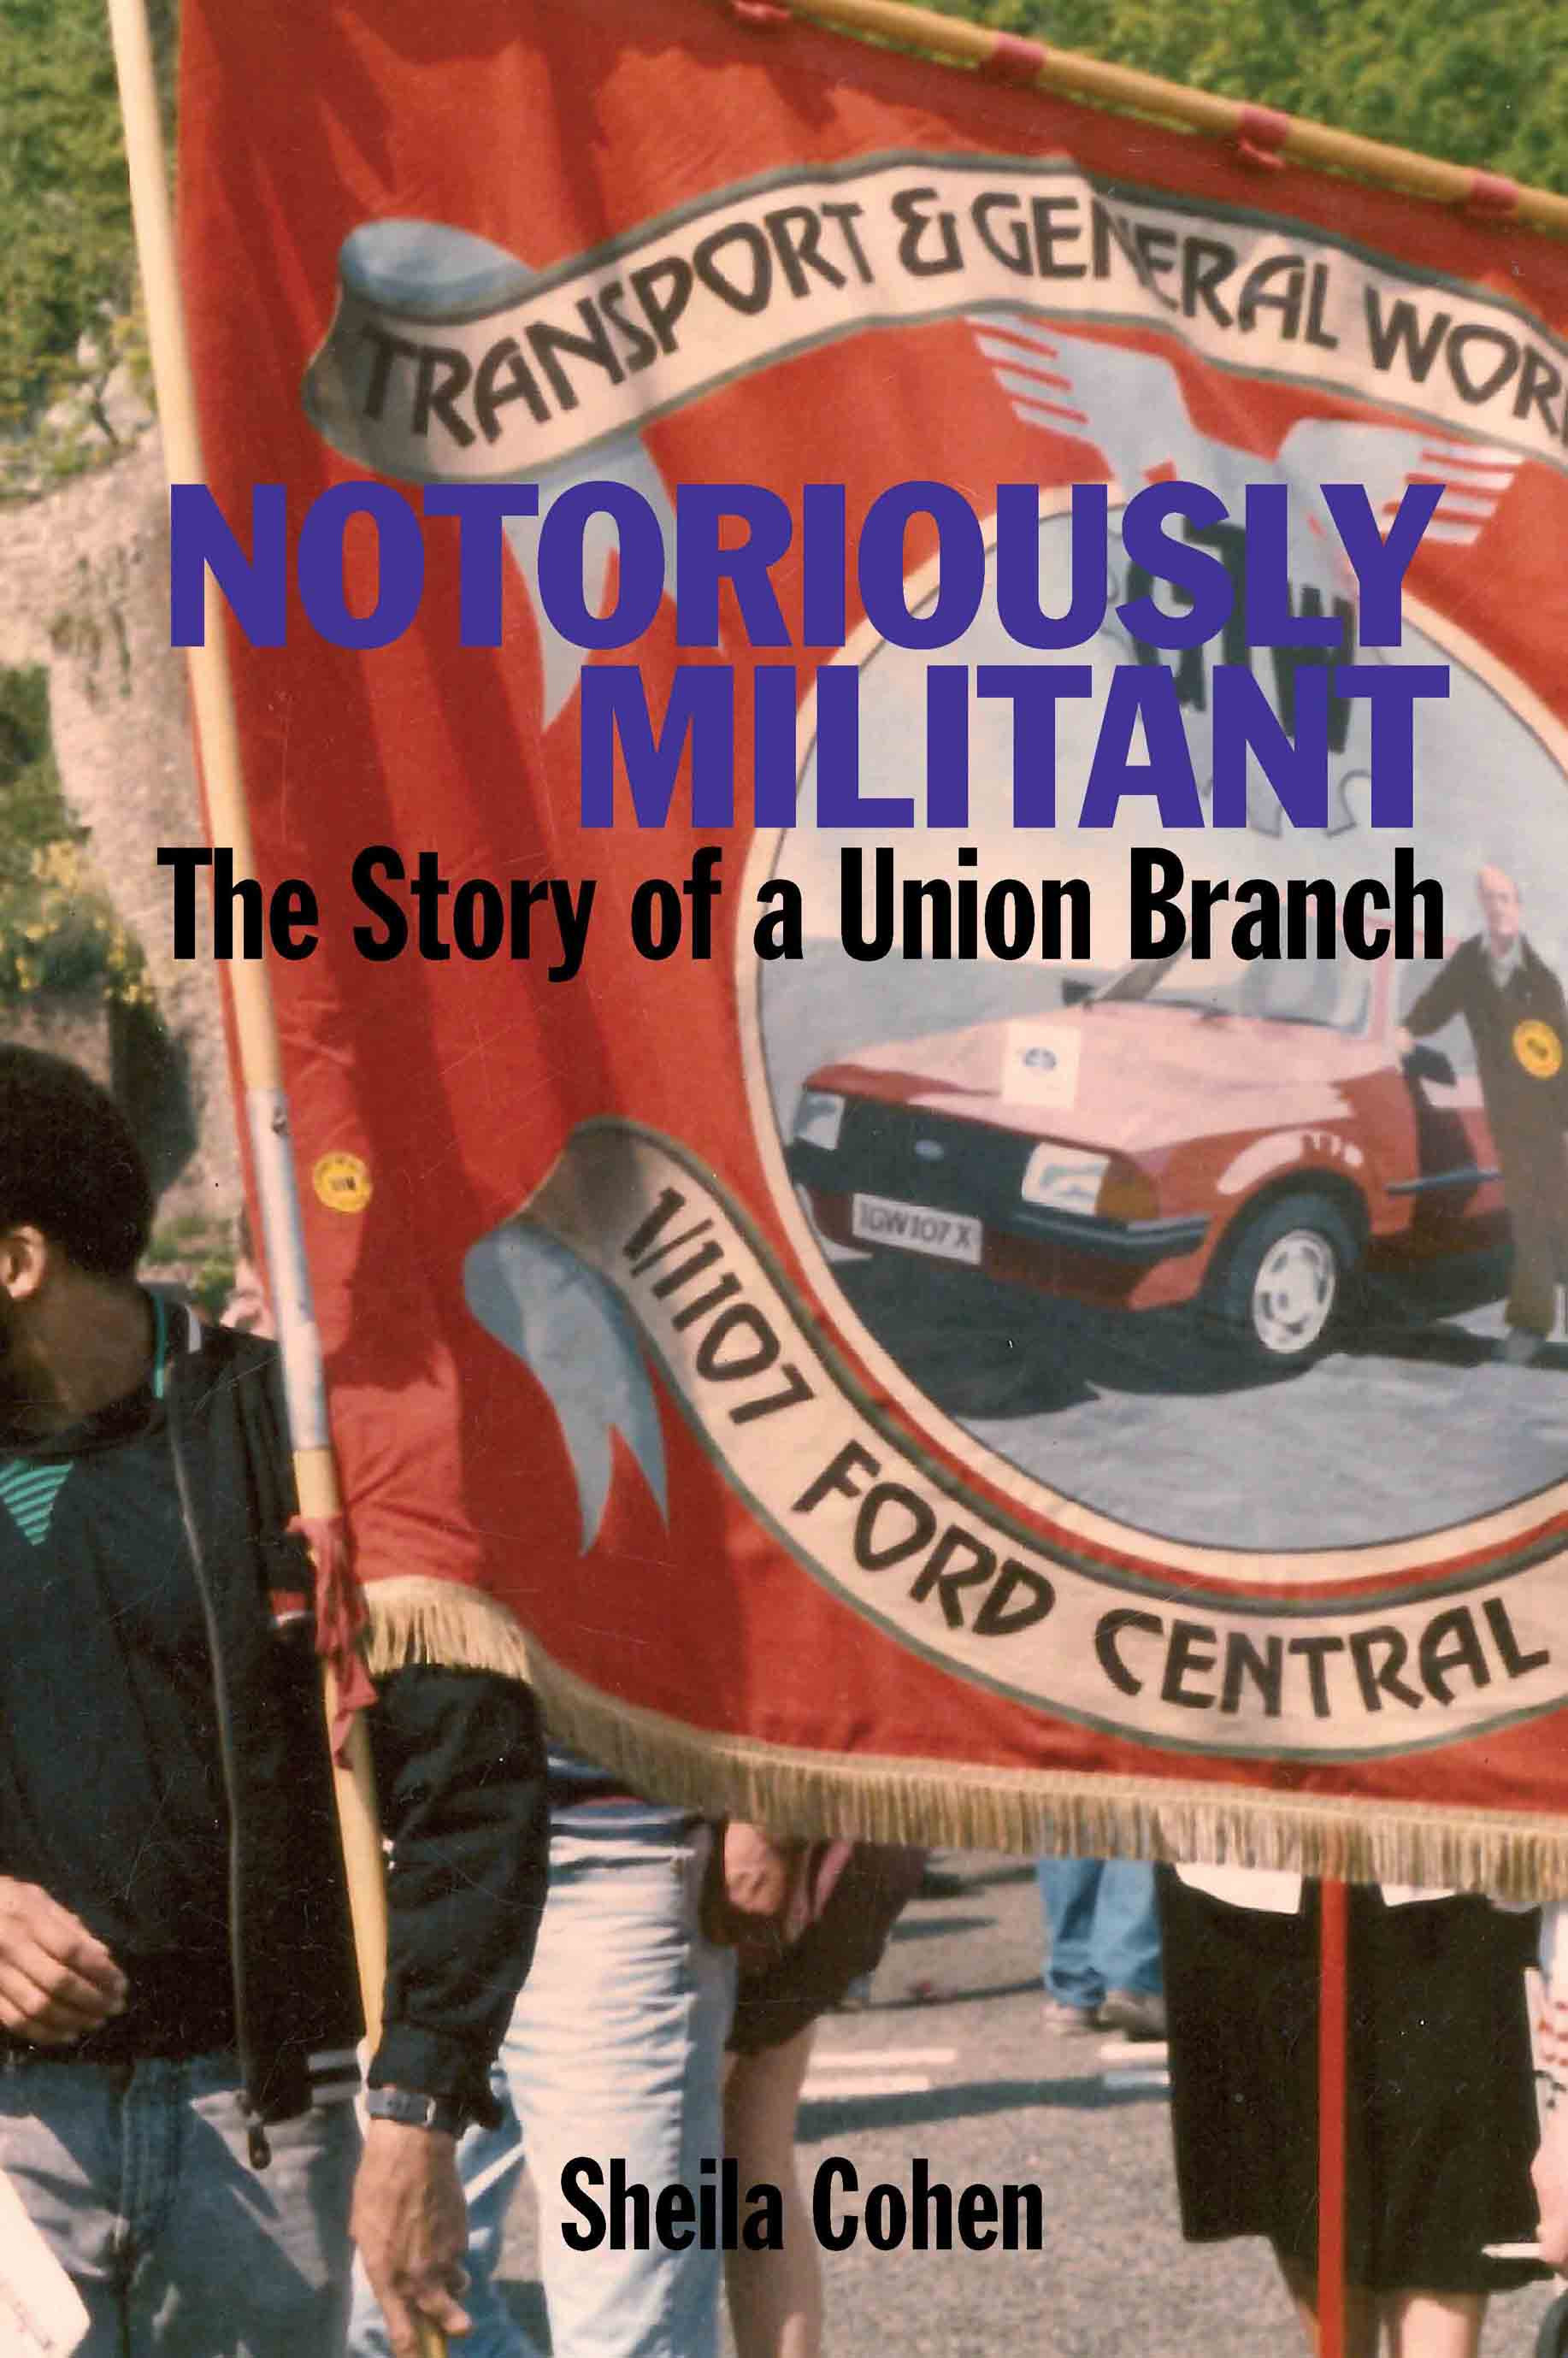 Notoriously Militant: The Story of a Militant Branch